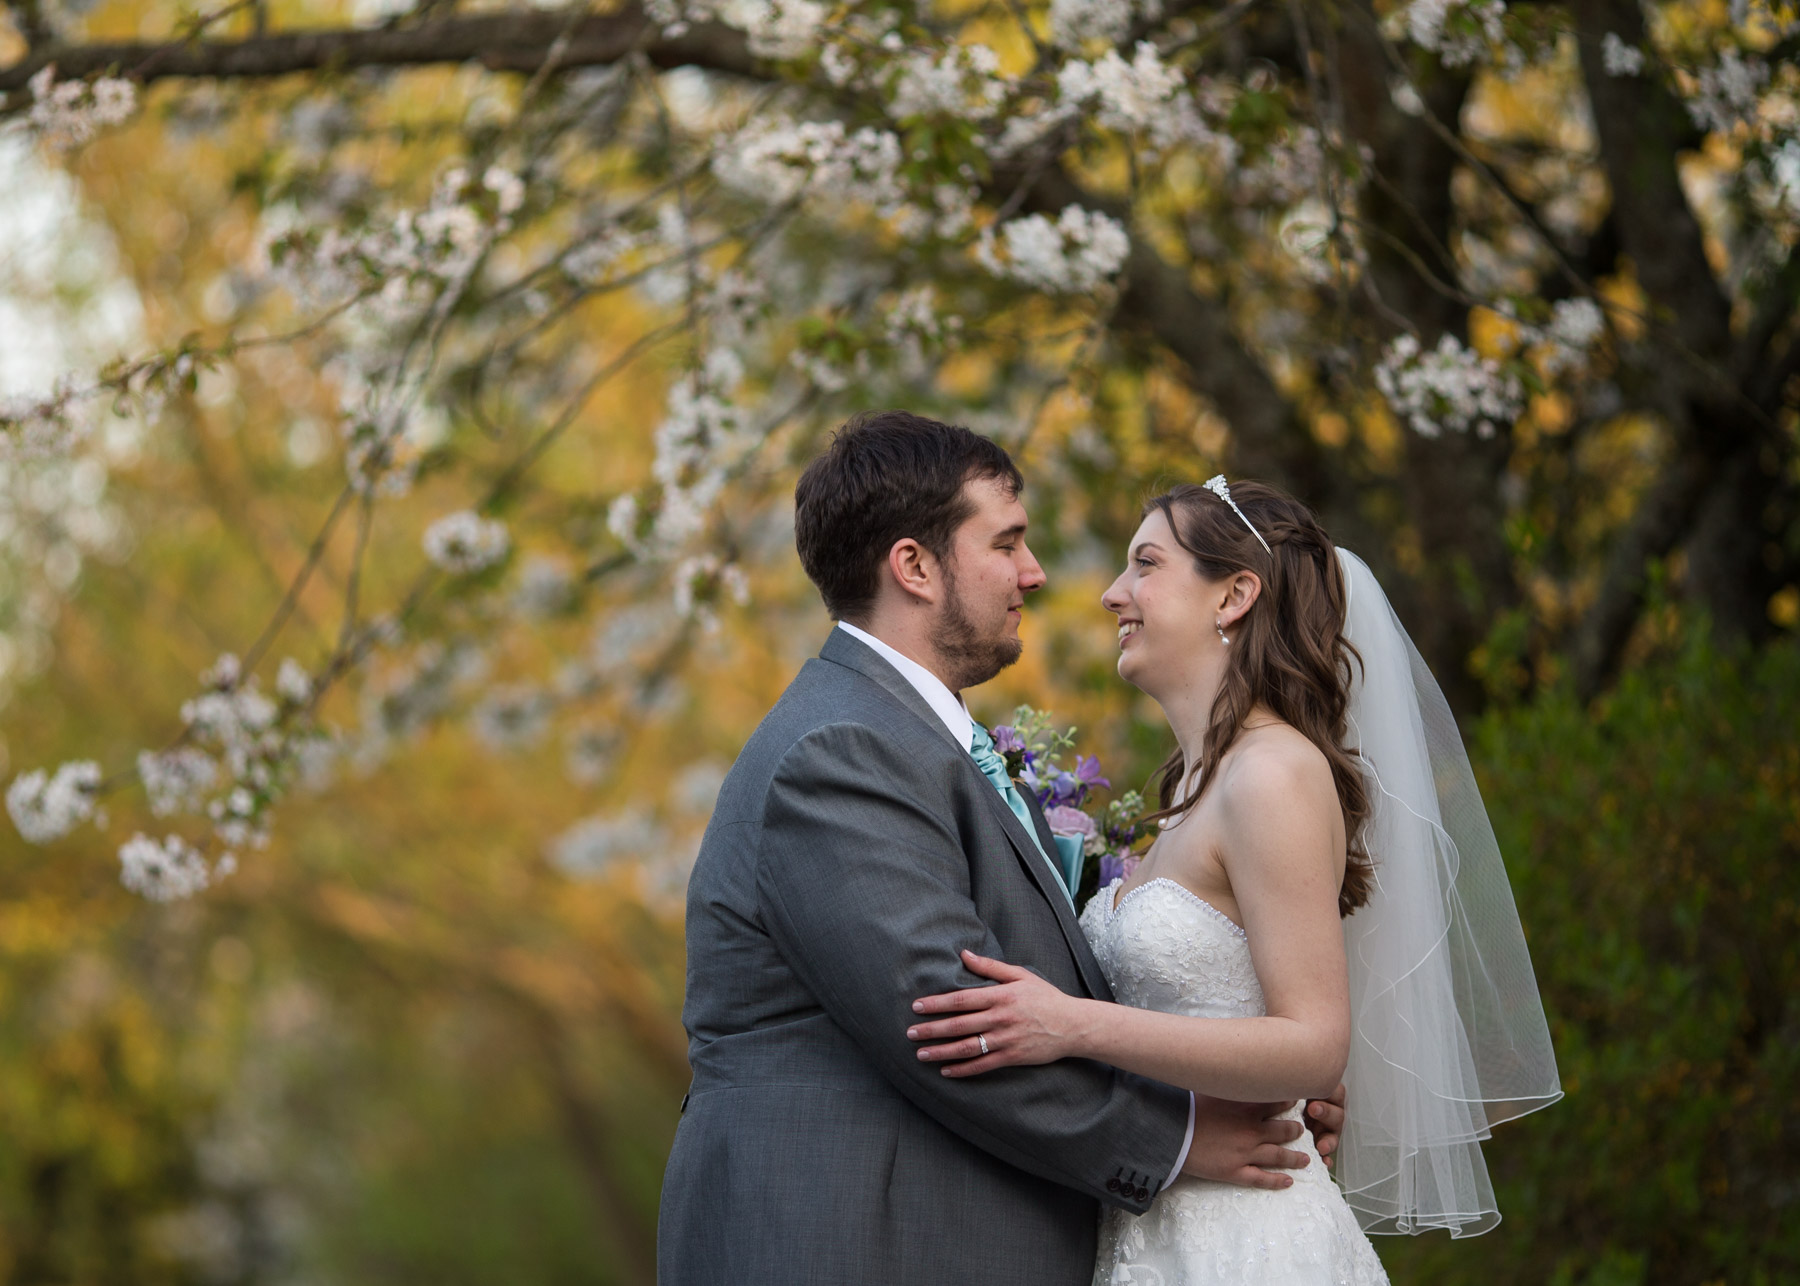 Relaxed and fun couples wedding photo